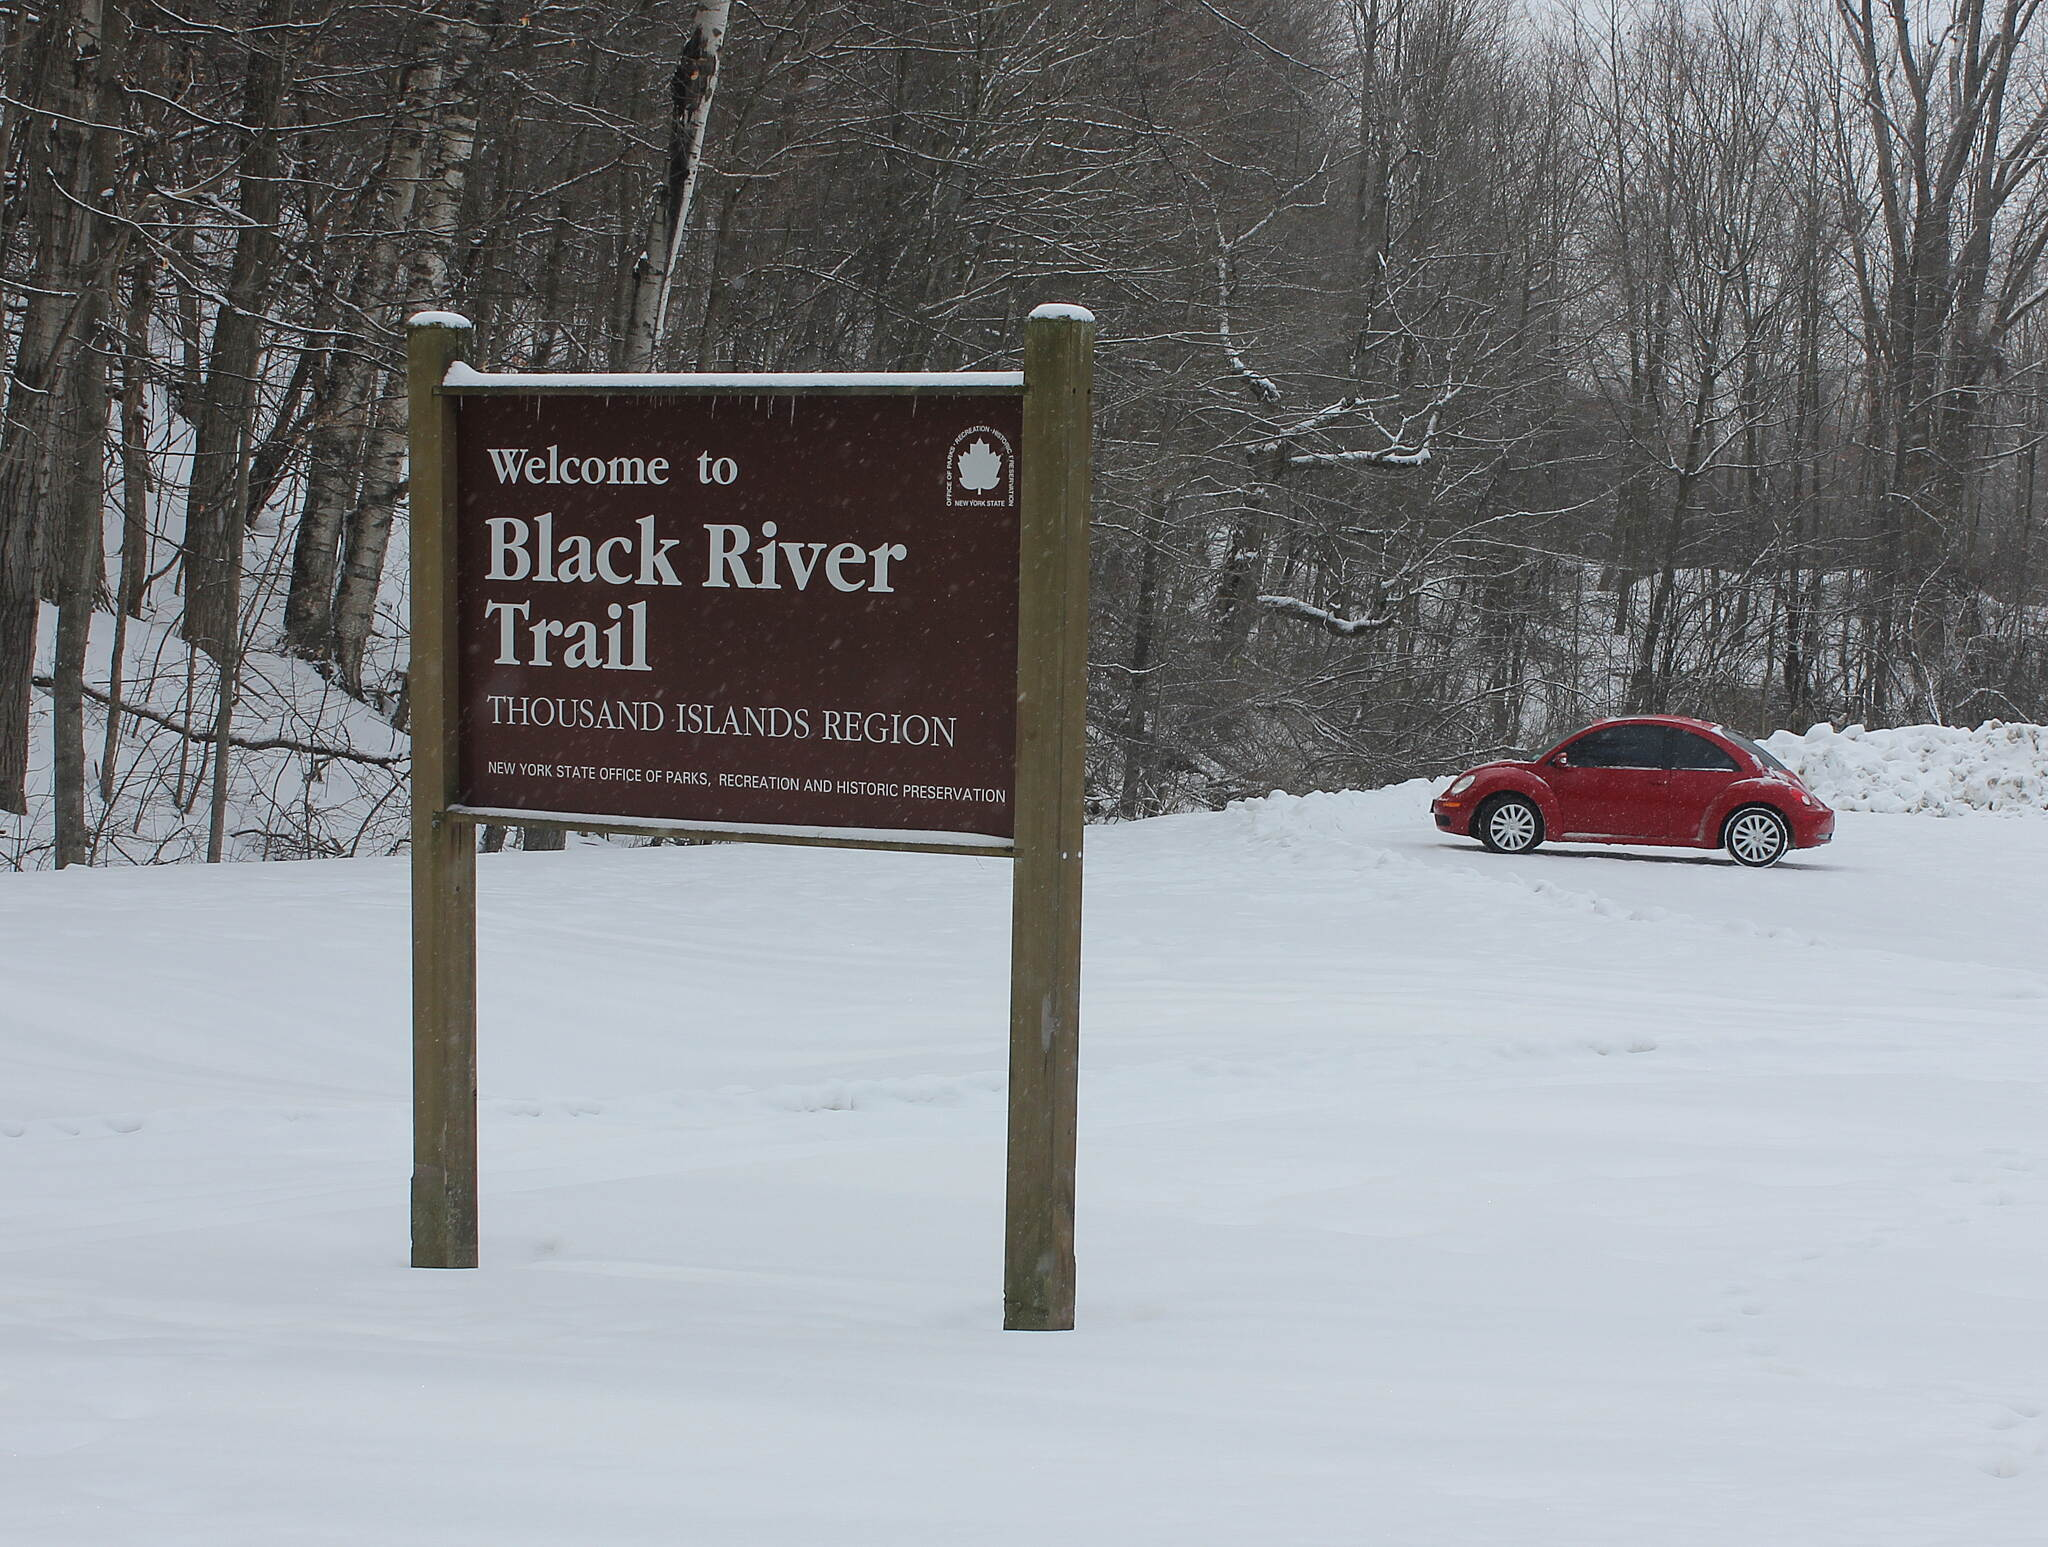 Black River Trail This is Where it Began....... My love of running on trails began during the summer of 2012 when my son introduced me to the Black River Trail in Watertown, NY. The area is so beautiful I wanted to take some winter pictures for your enjoyment. 